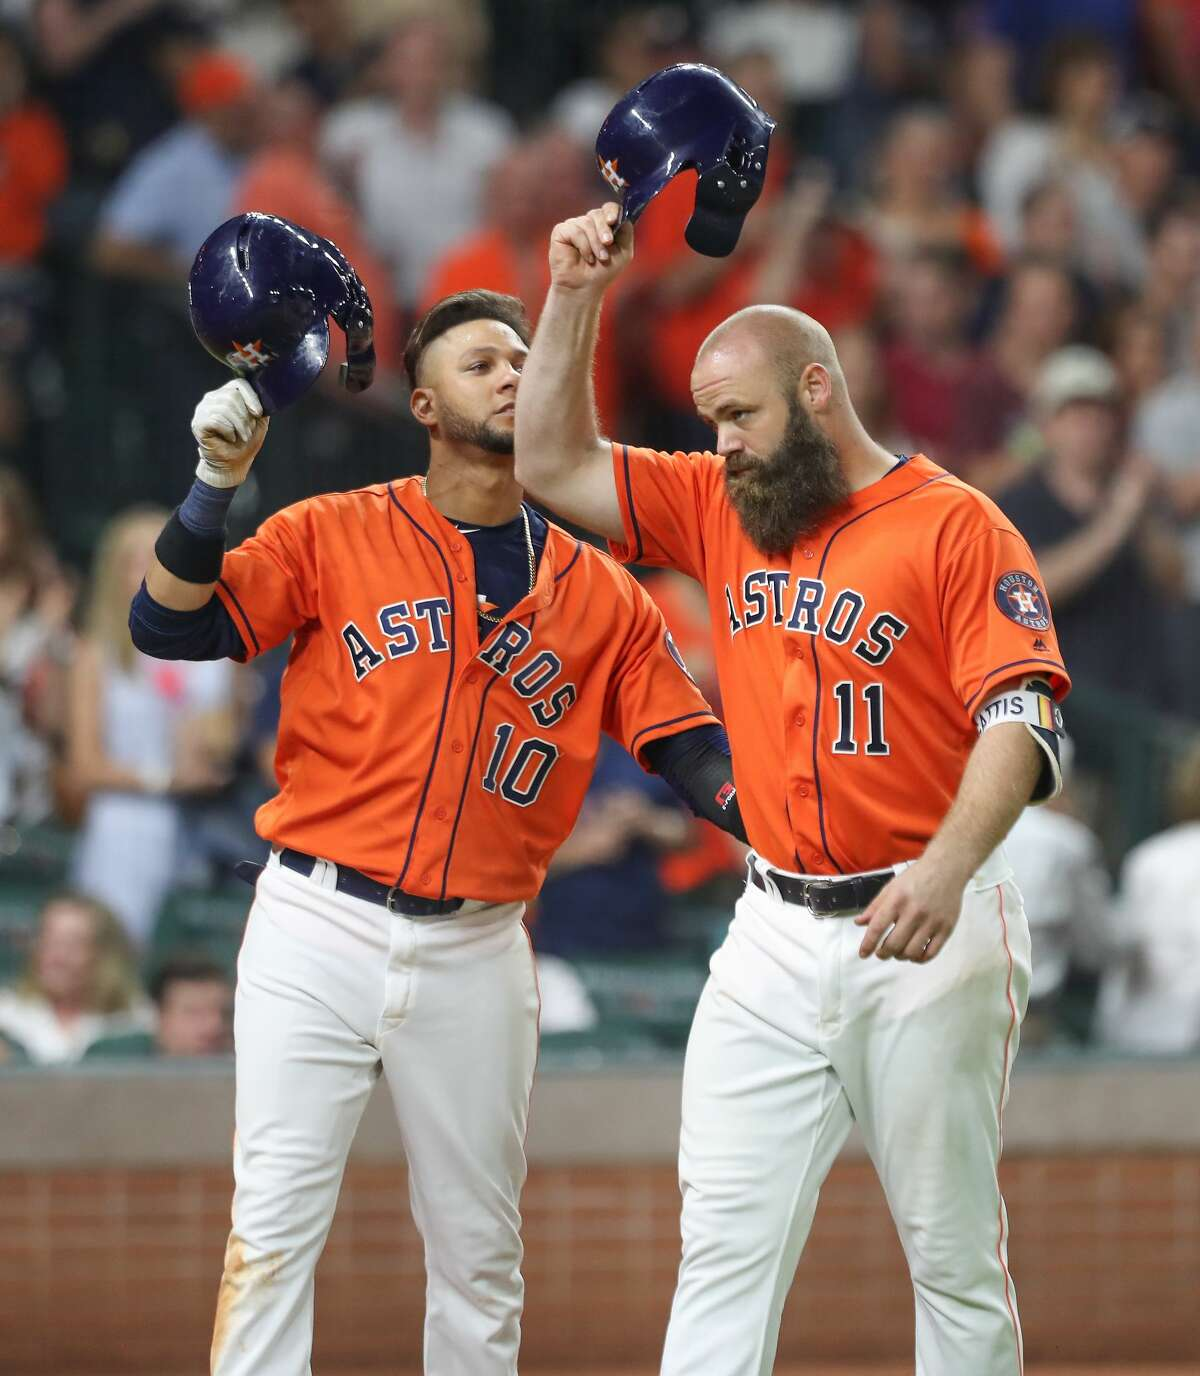 Houston Astros catcher Evan Gattis (11) tips his helmet to the crowd after scoring a two run homer during the 9th inning of an MLB baseball game at Minute Maid Park Friday, June 1, 2018, in Houston. Houston Astros first baseman Yuli Gurriel (10) was hit scored with Gattis' hit. ( Steve Gonzales / Houston Chronicle )